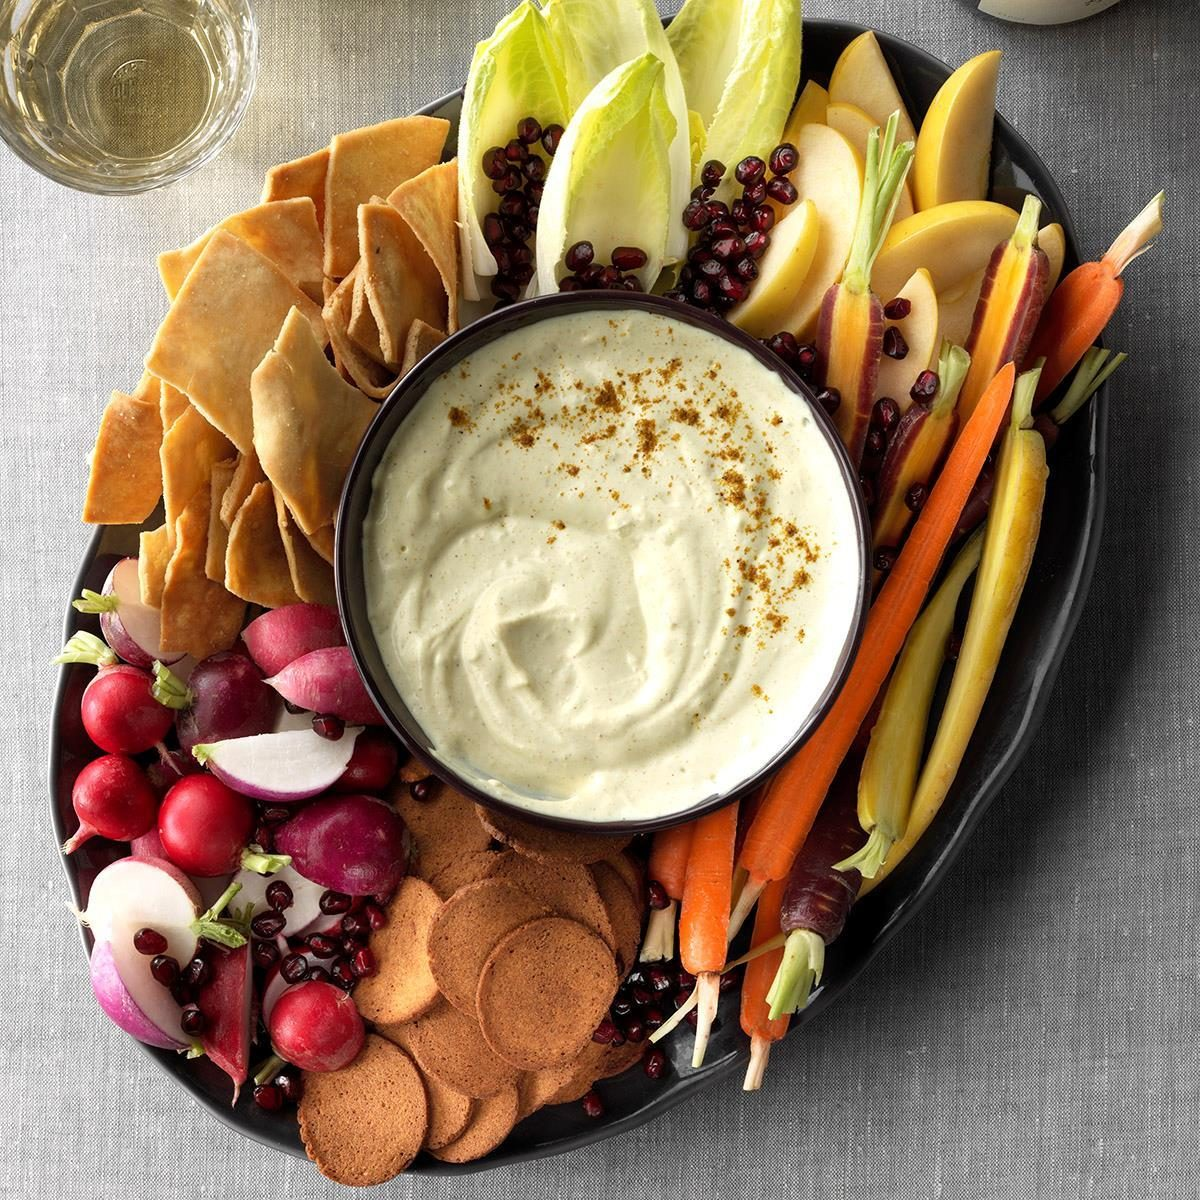 75 Easy Appetizers for Your Next Party